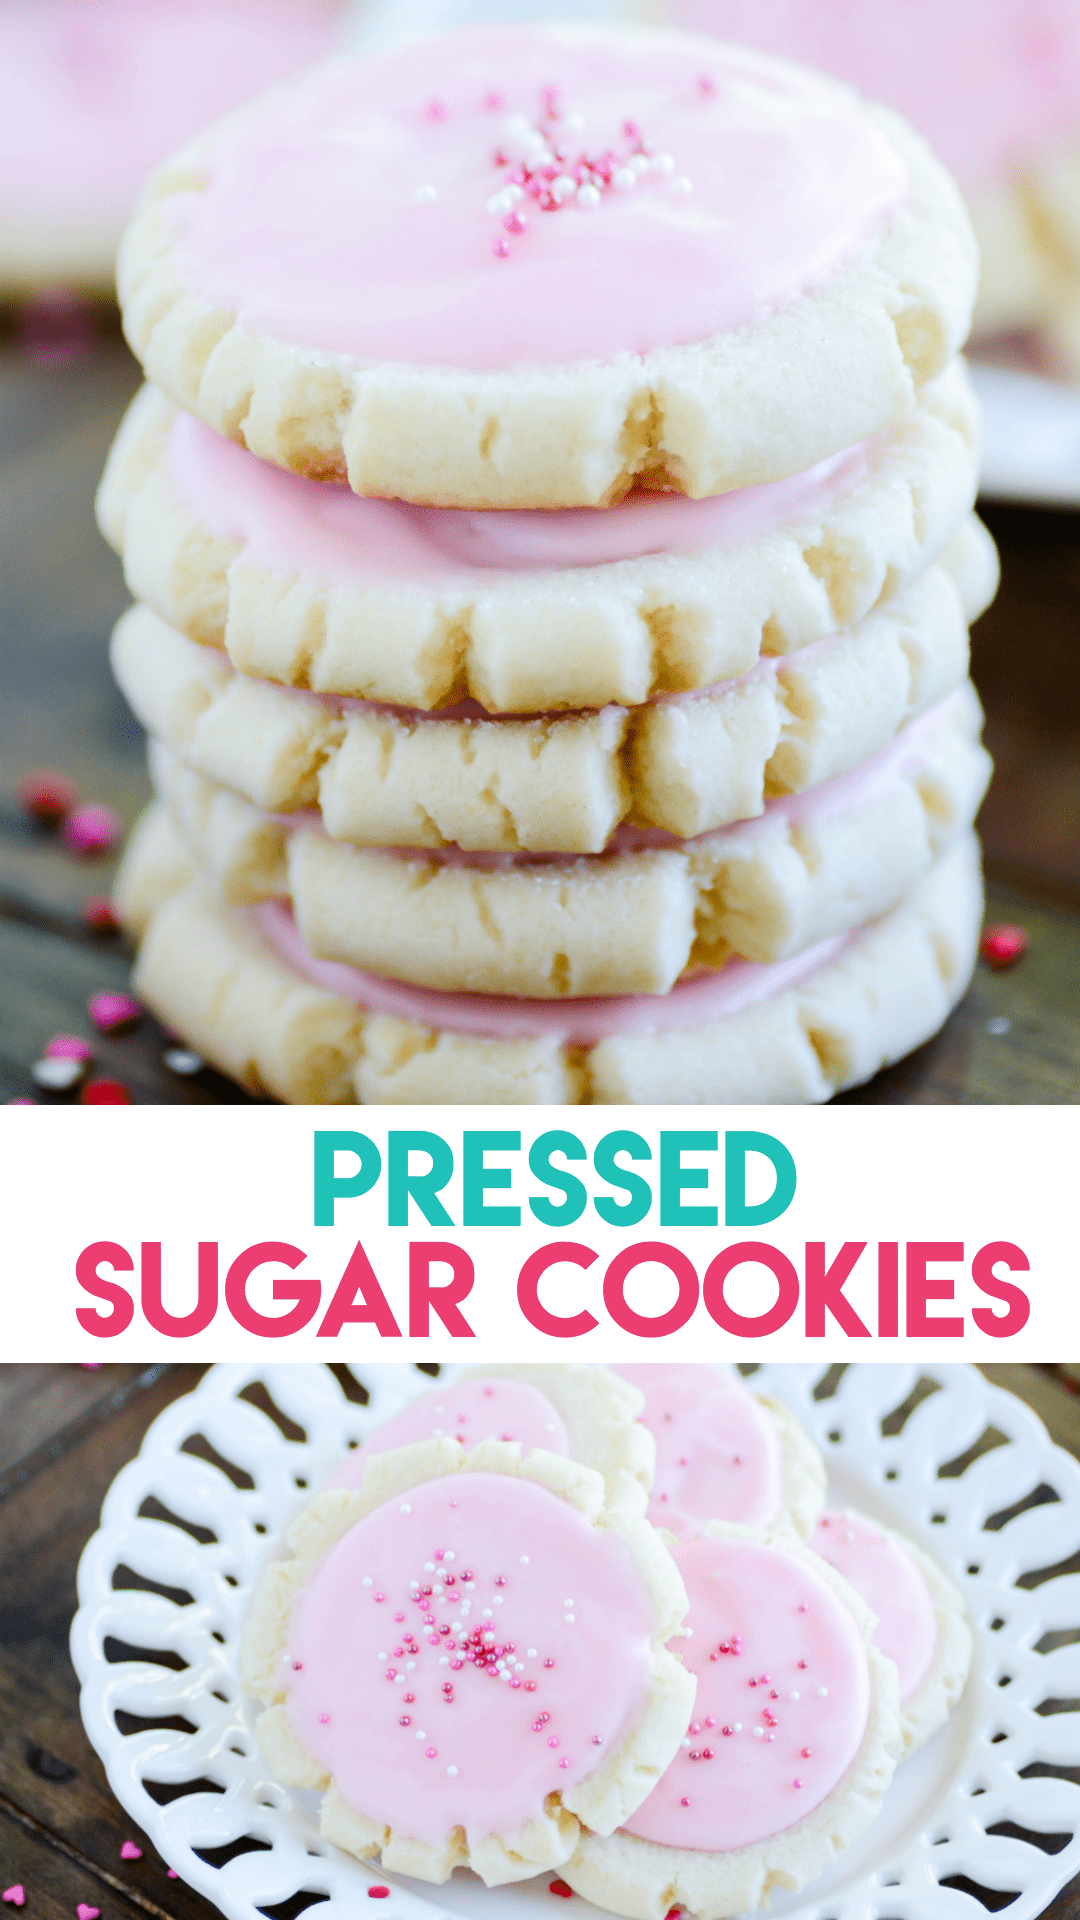 Soft and buttery sugar cookies with a smooth and creamy icing on top.